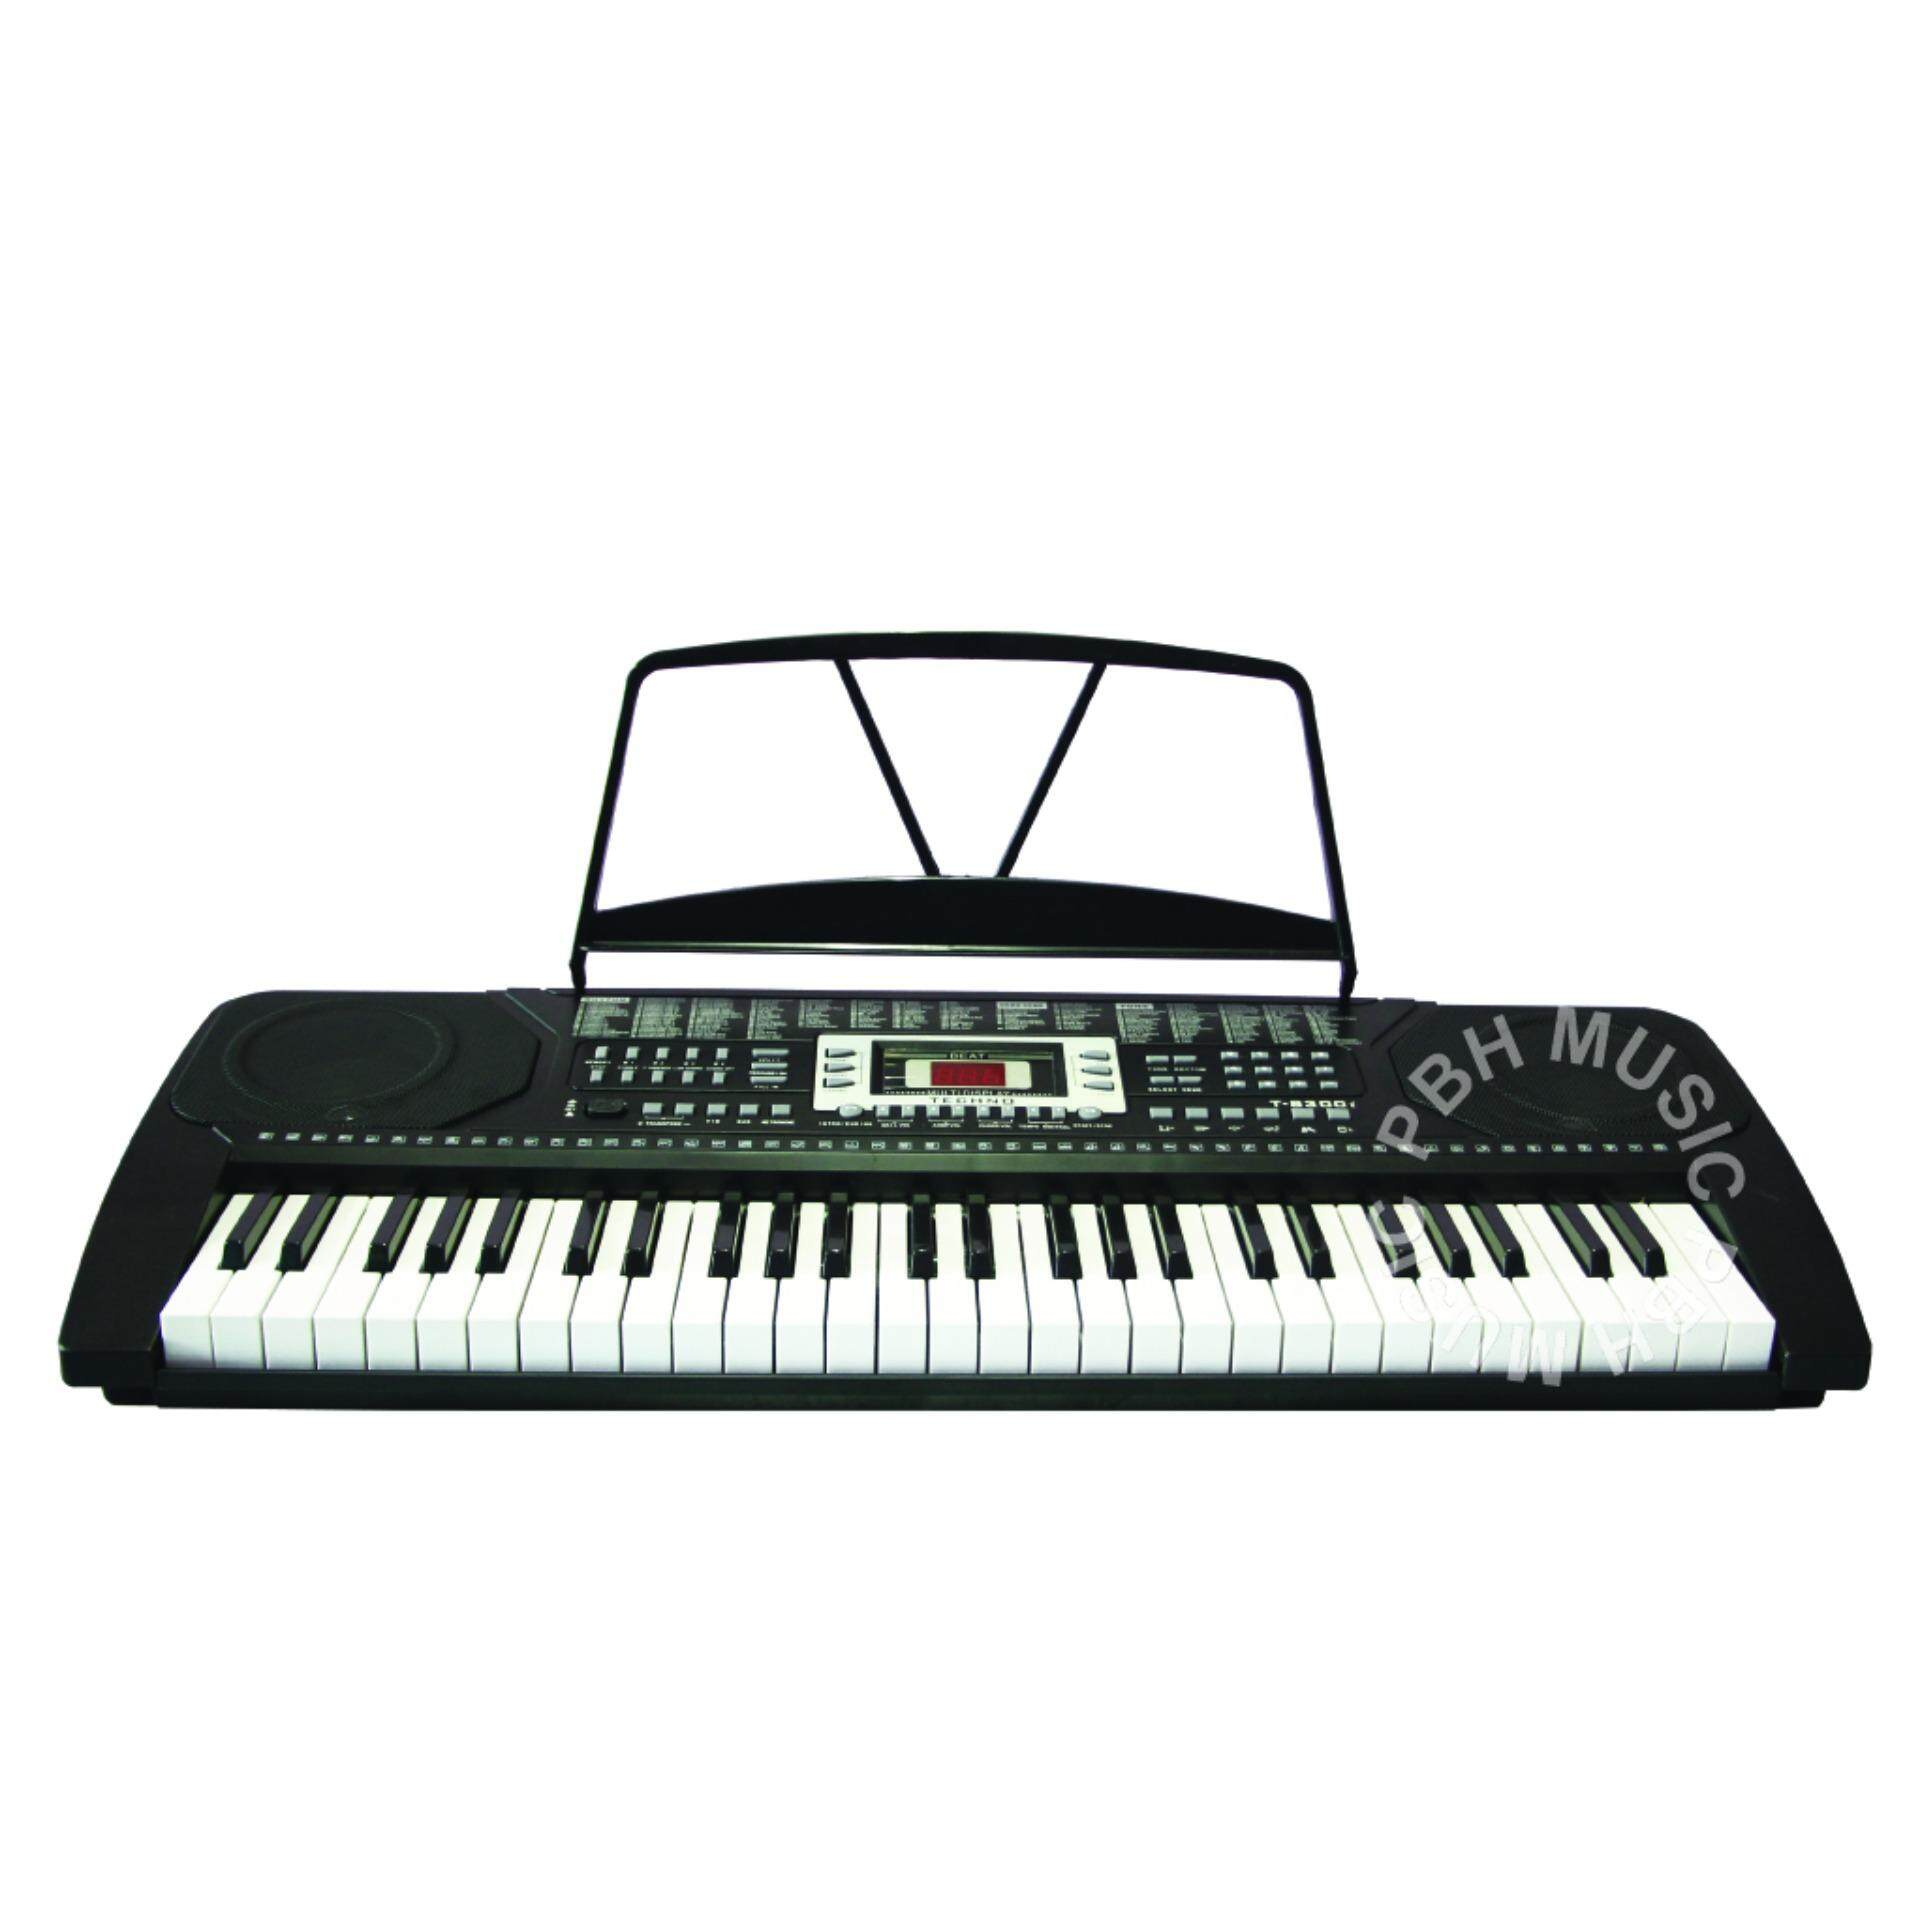 techno 54 standard full size piano key 128 rhythms and sounds music keyboard for music education. Black Bedroom Furniture Sets. Home Design Ideas